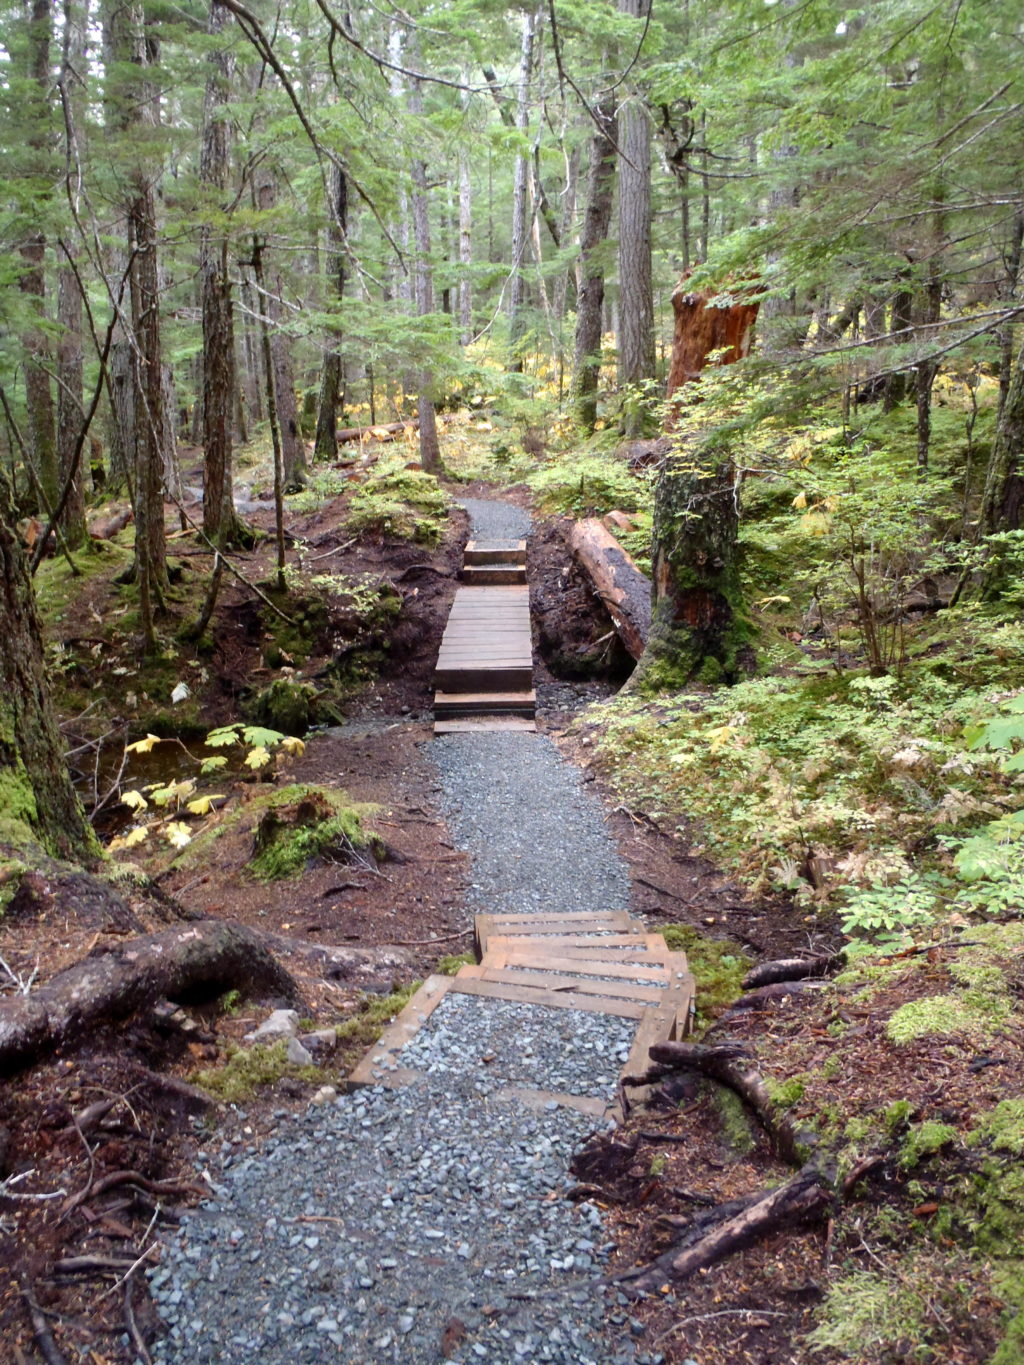 Committee seeks ideas to improve Haines trail offerings